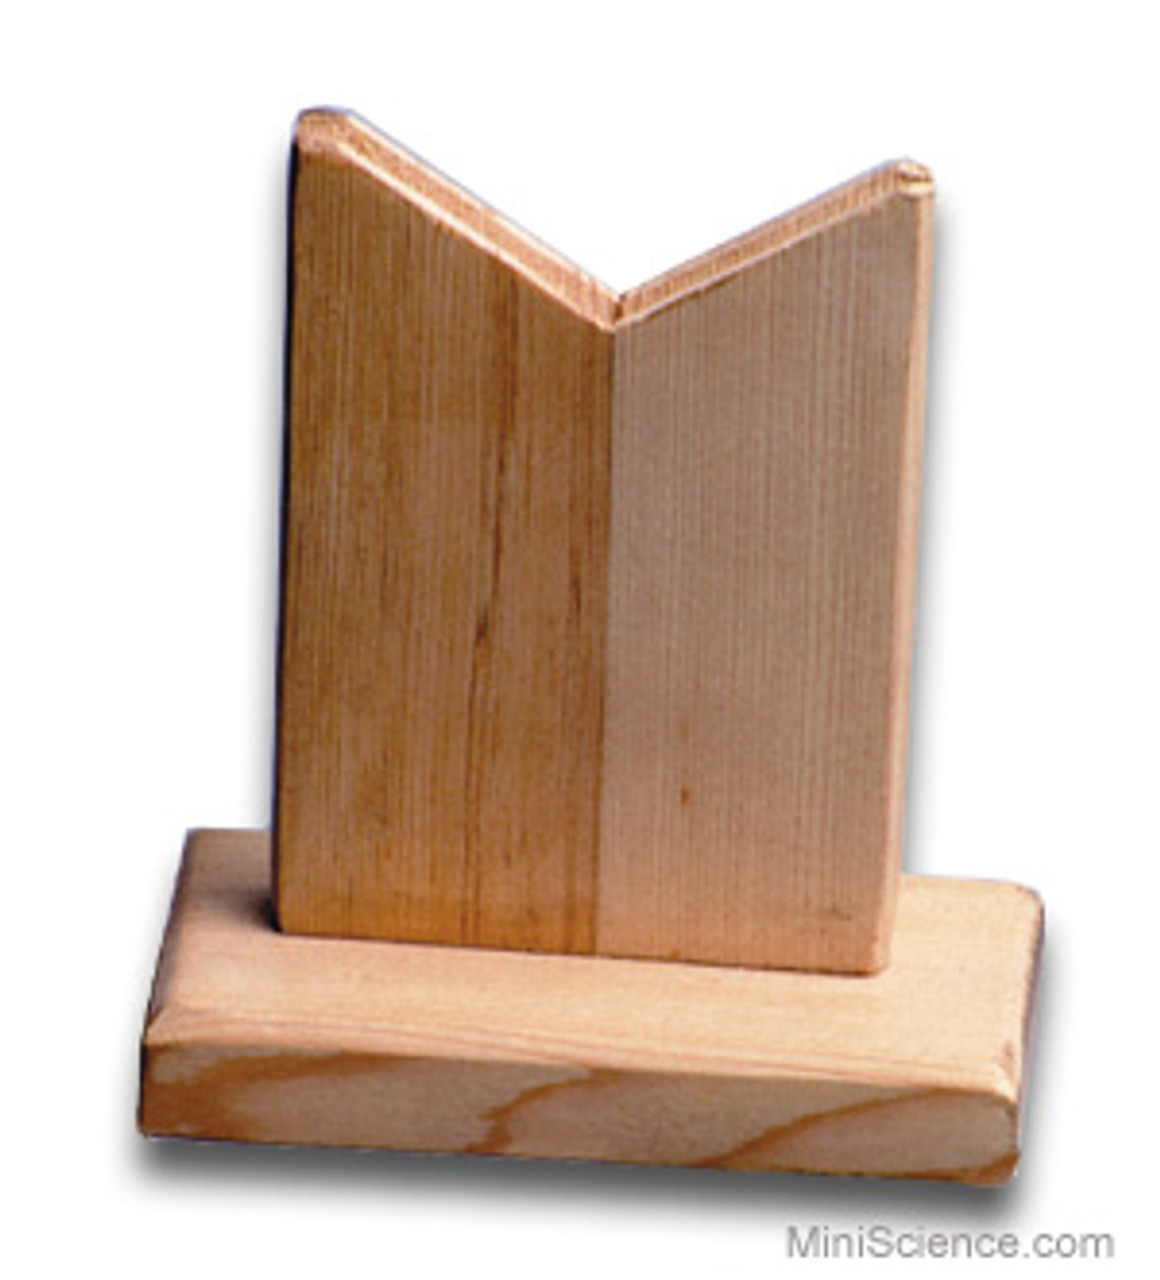 Wooden Stand for Lens and Mirror